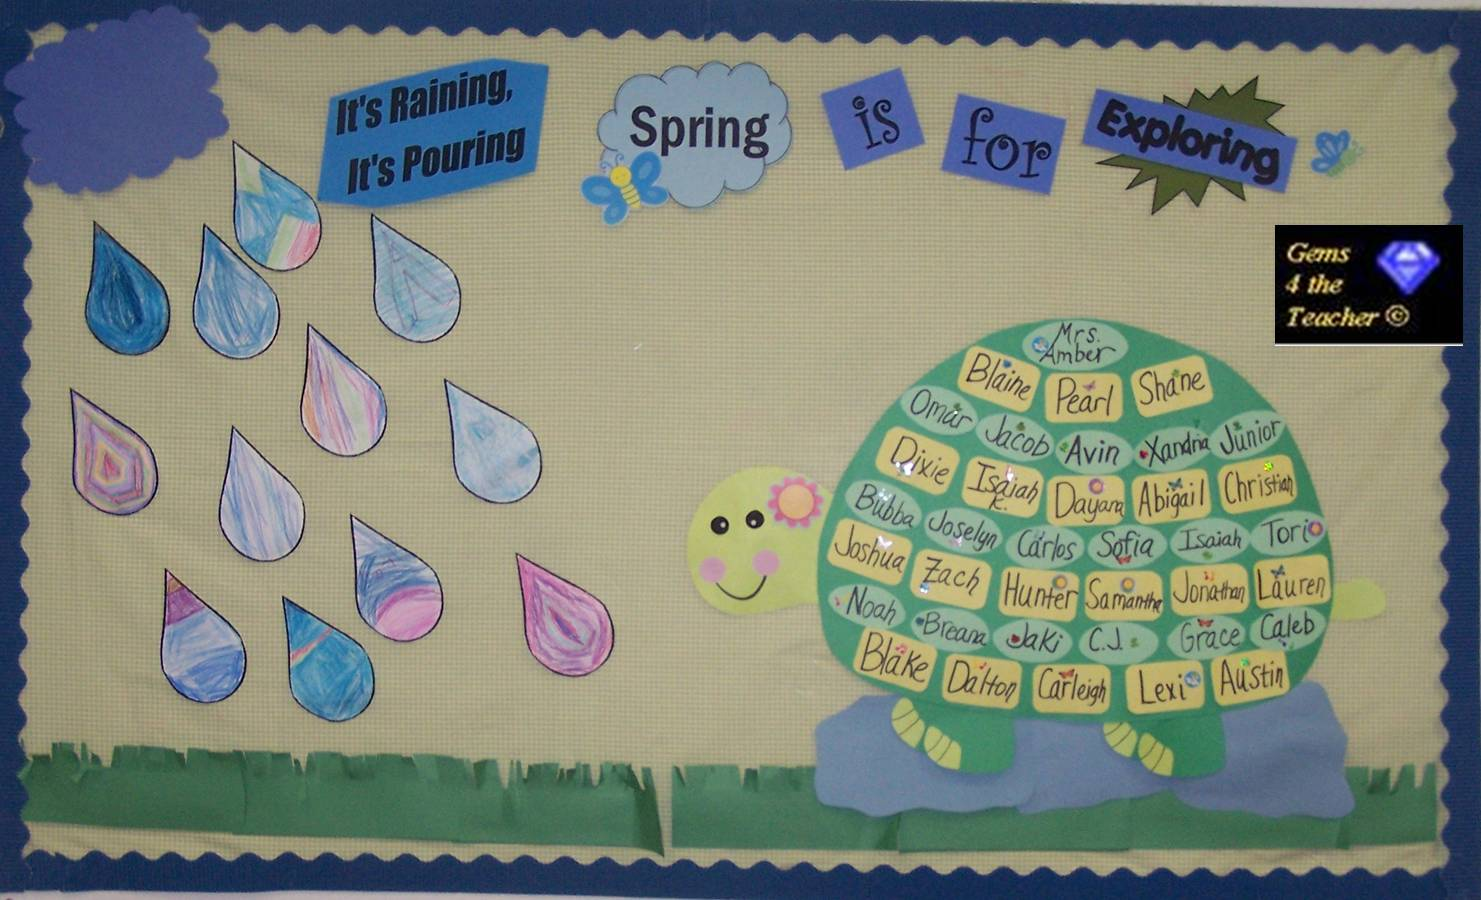 january february march april and may bulletin boards 1 Quotes